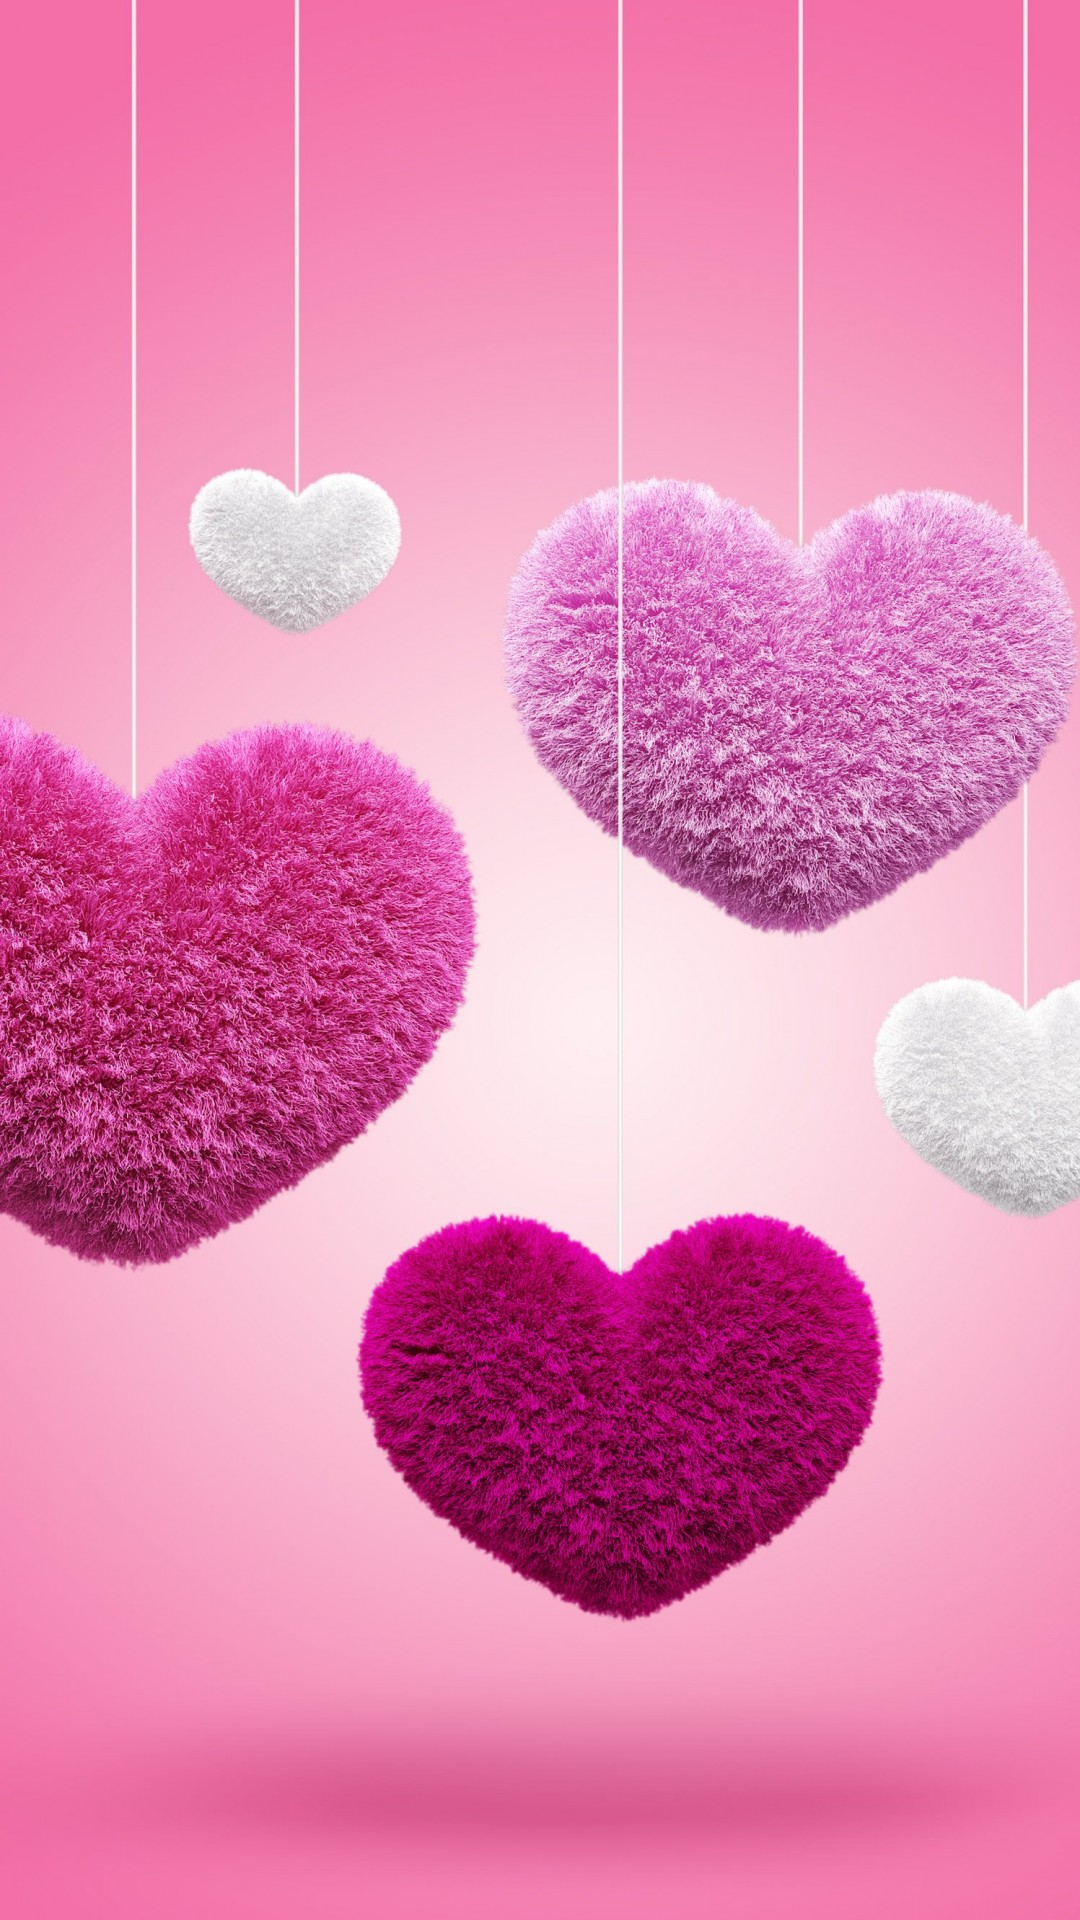 Fluffy Hearts Wallpaper for SAMSUNG Galaxy S4